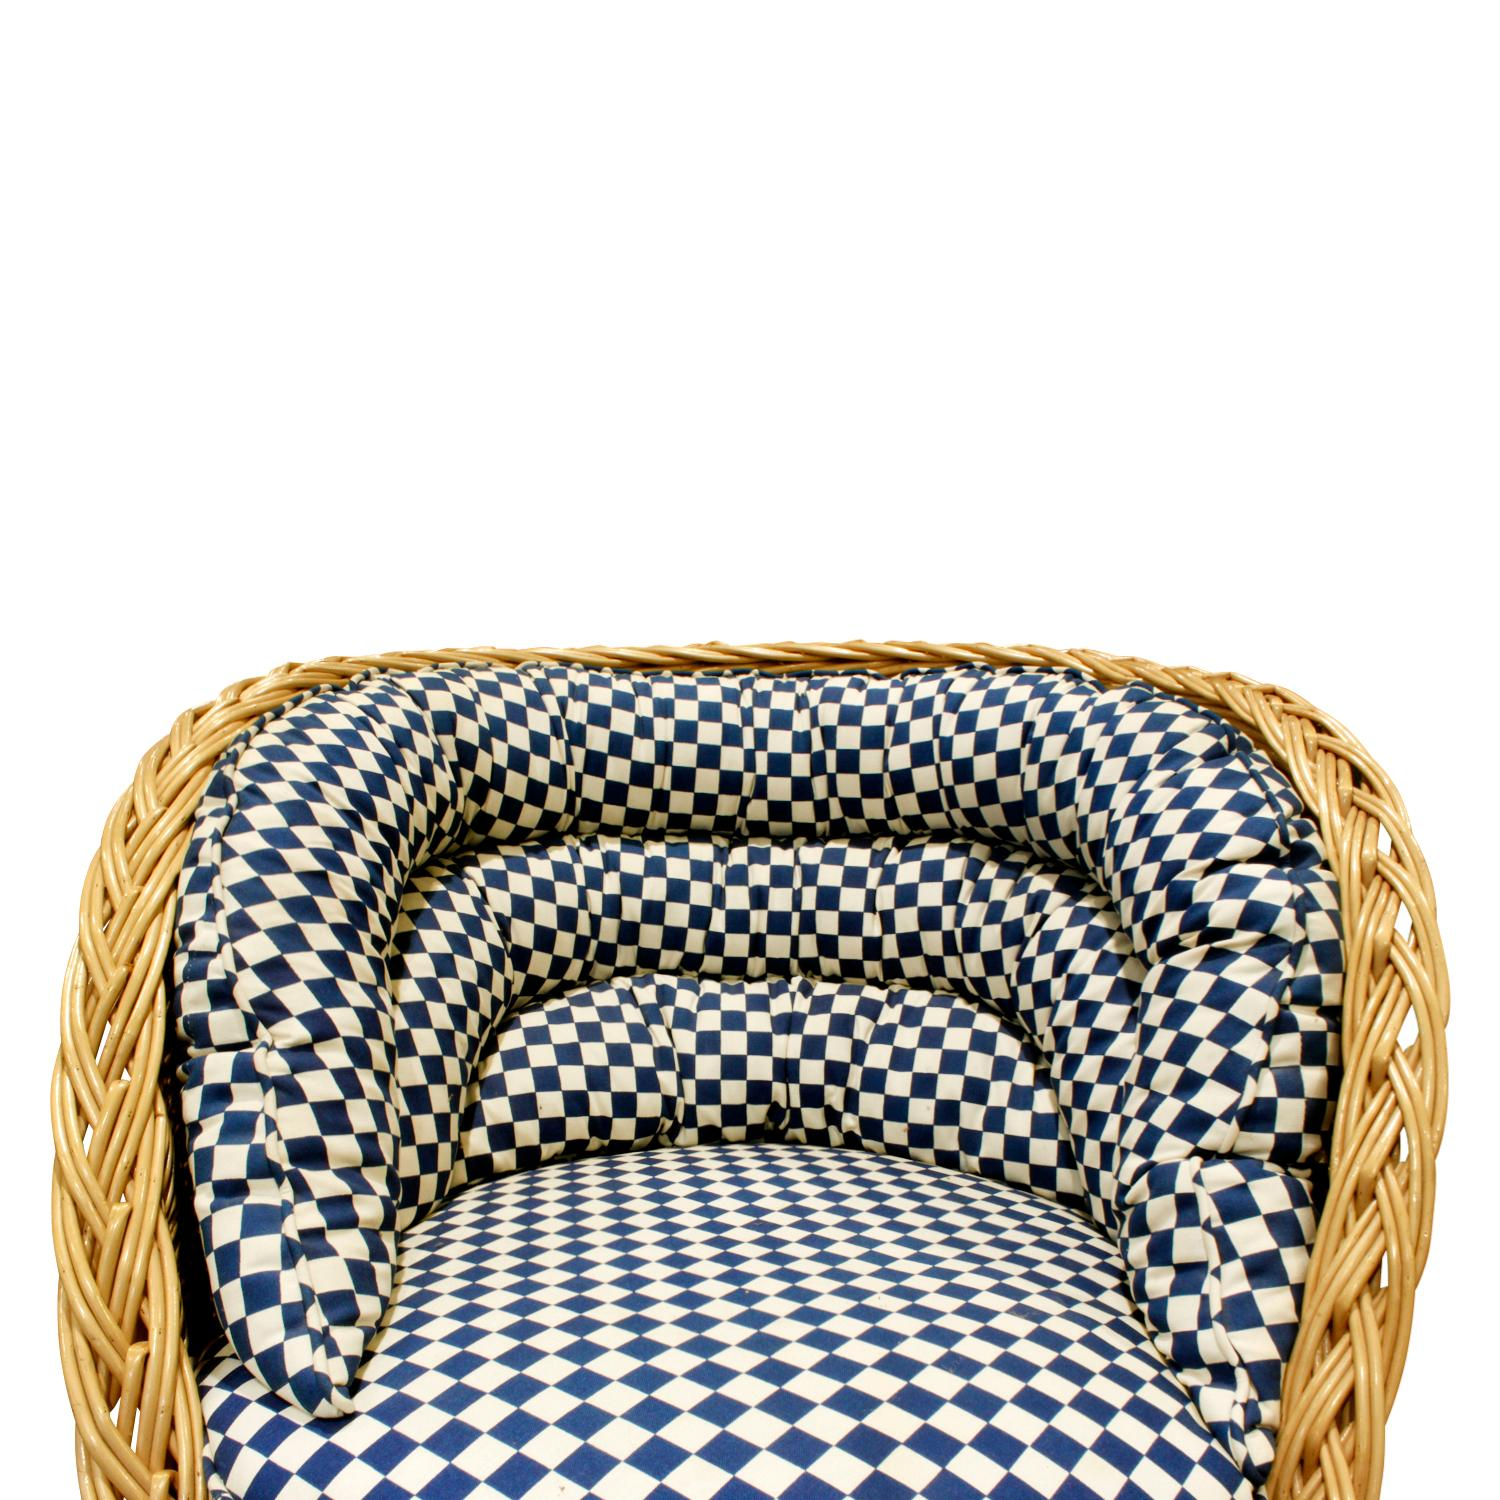 Phenomenal Pair Of Studio Made Woven Wicker Lounge Chairs 1970S Ocoug Best Dining Table And Chair Ideas Images Ocougorg